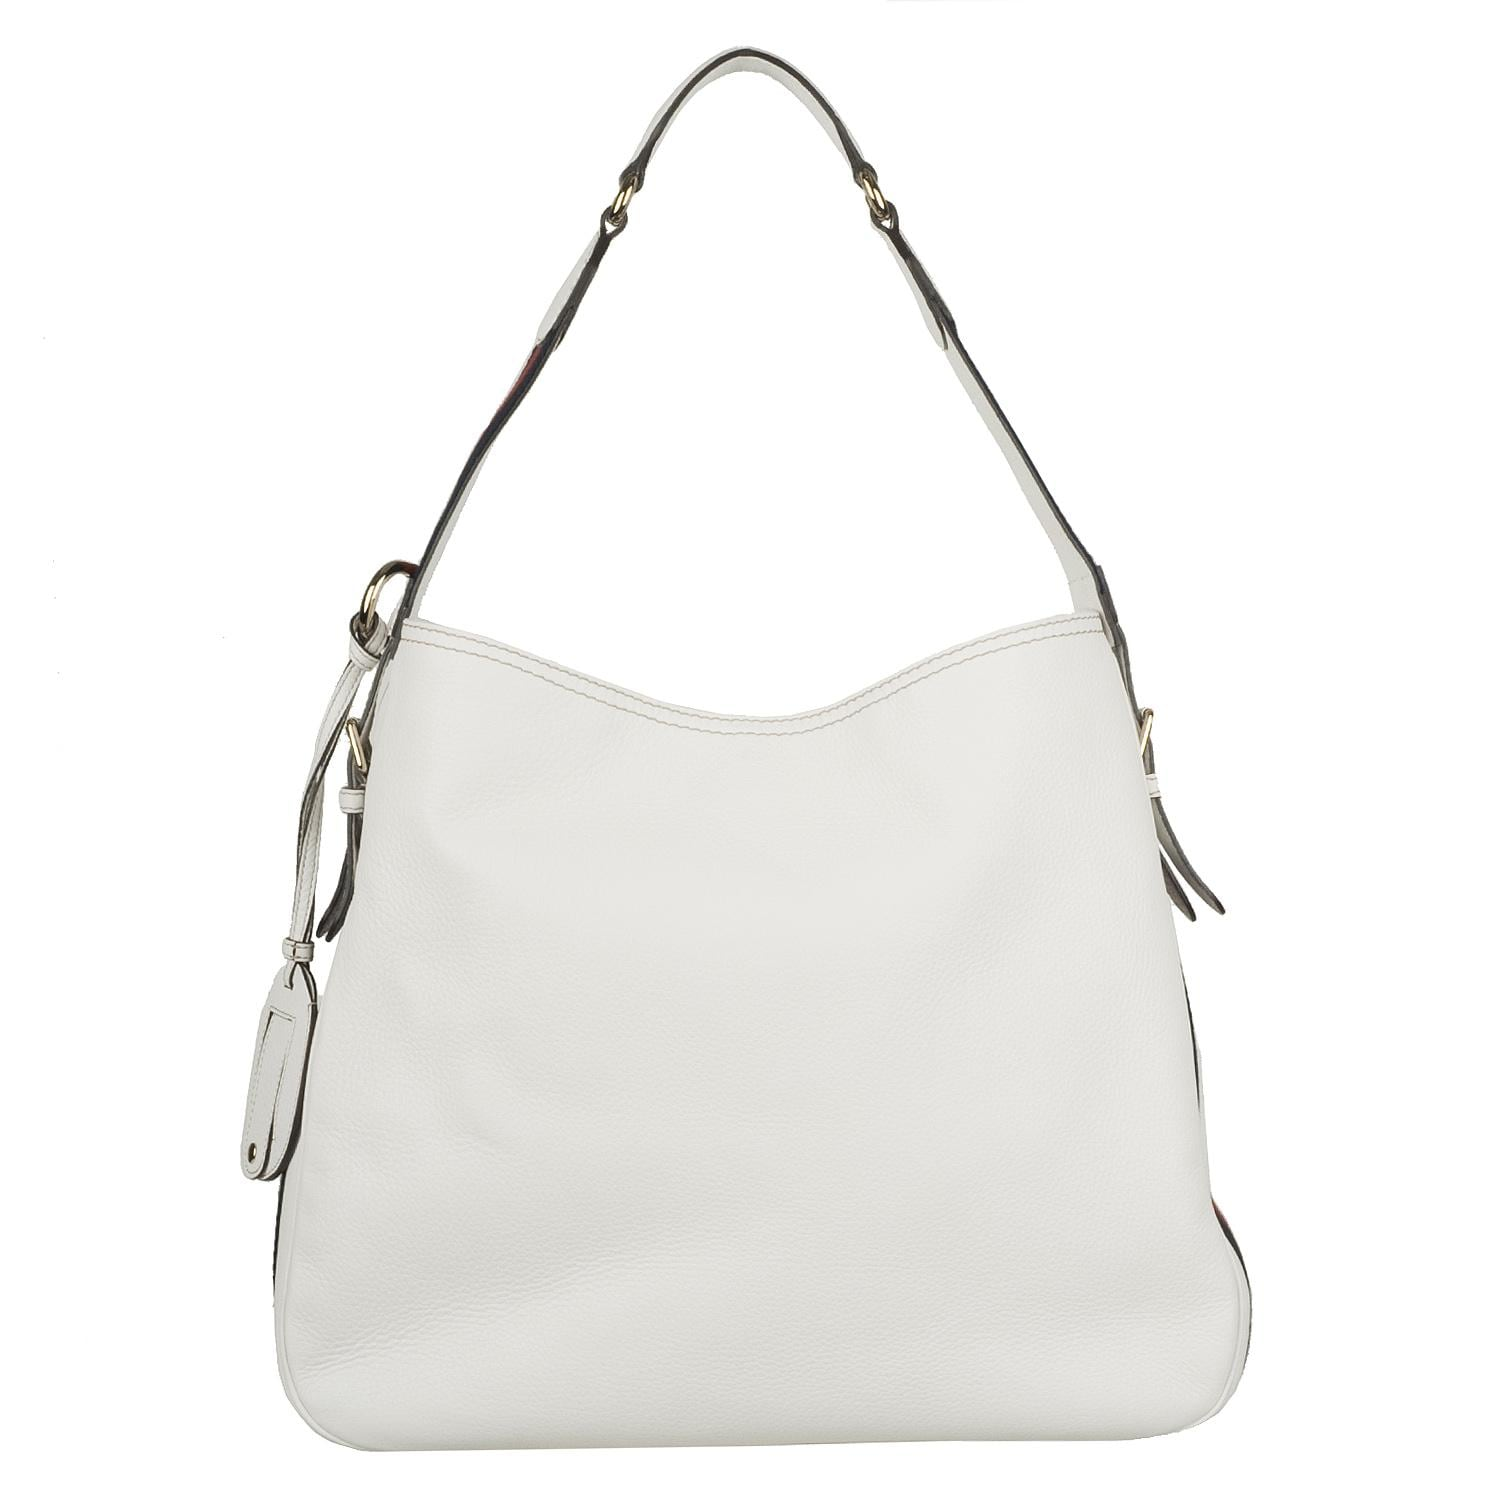 Gucci Heritage Medium White Leather Hobo Bag Free Shipping